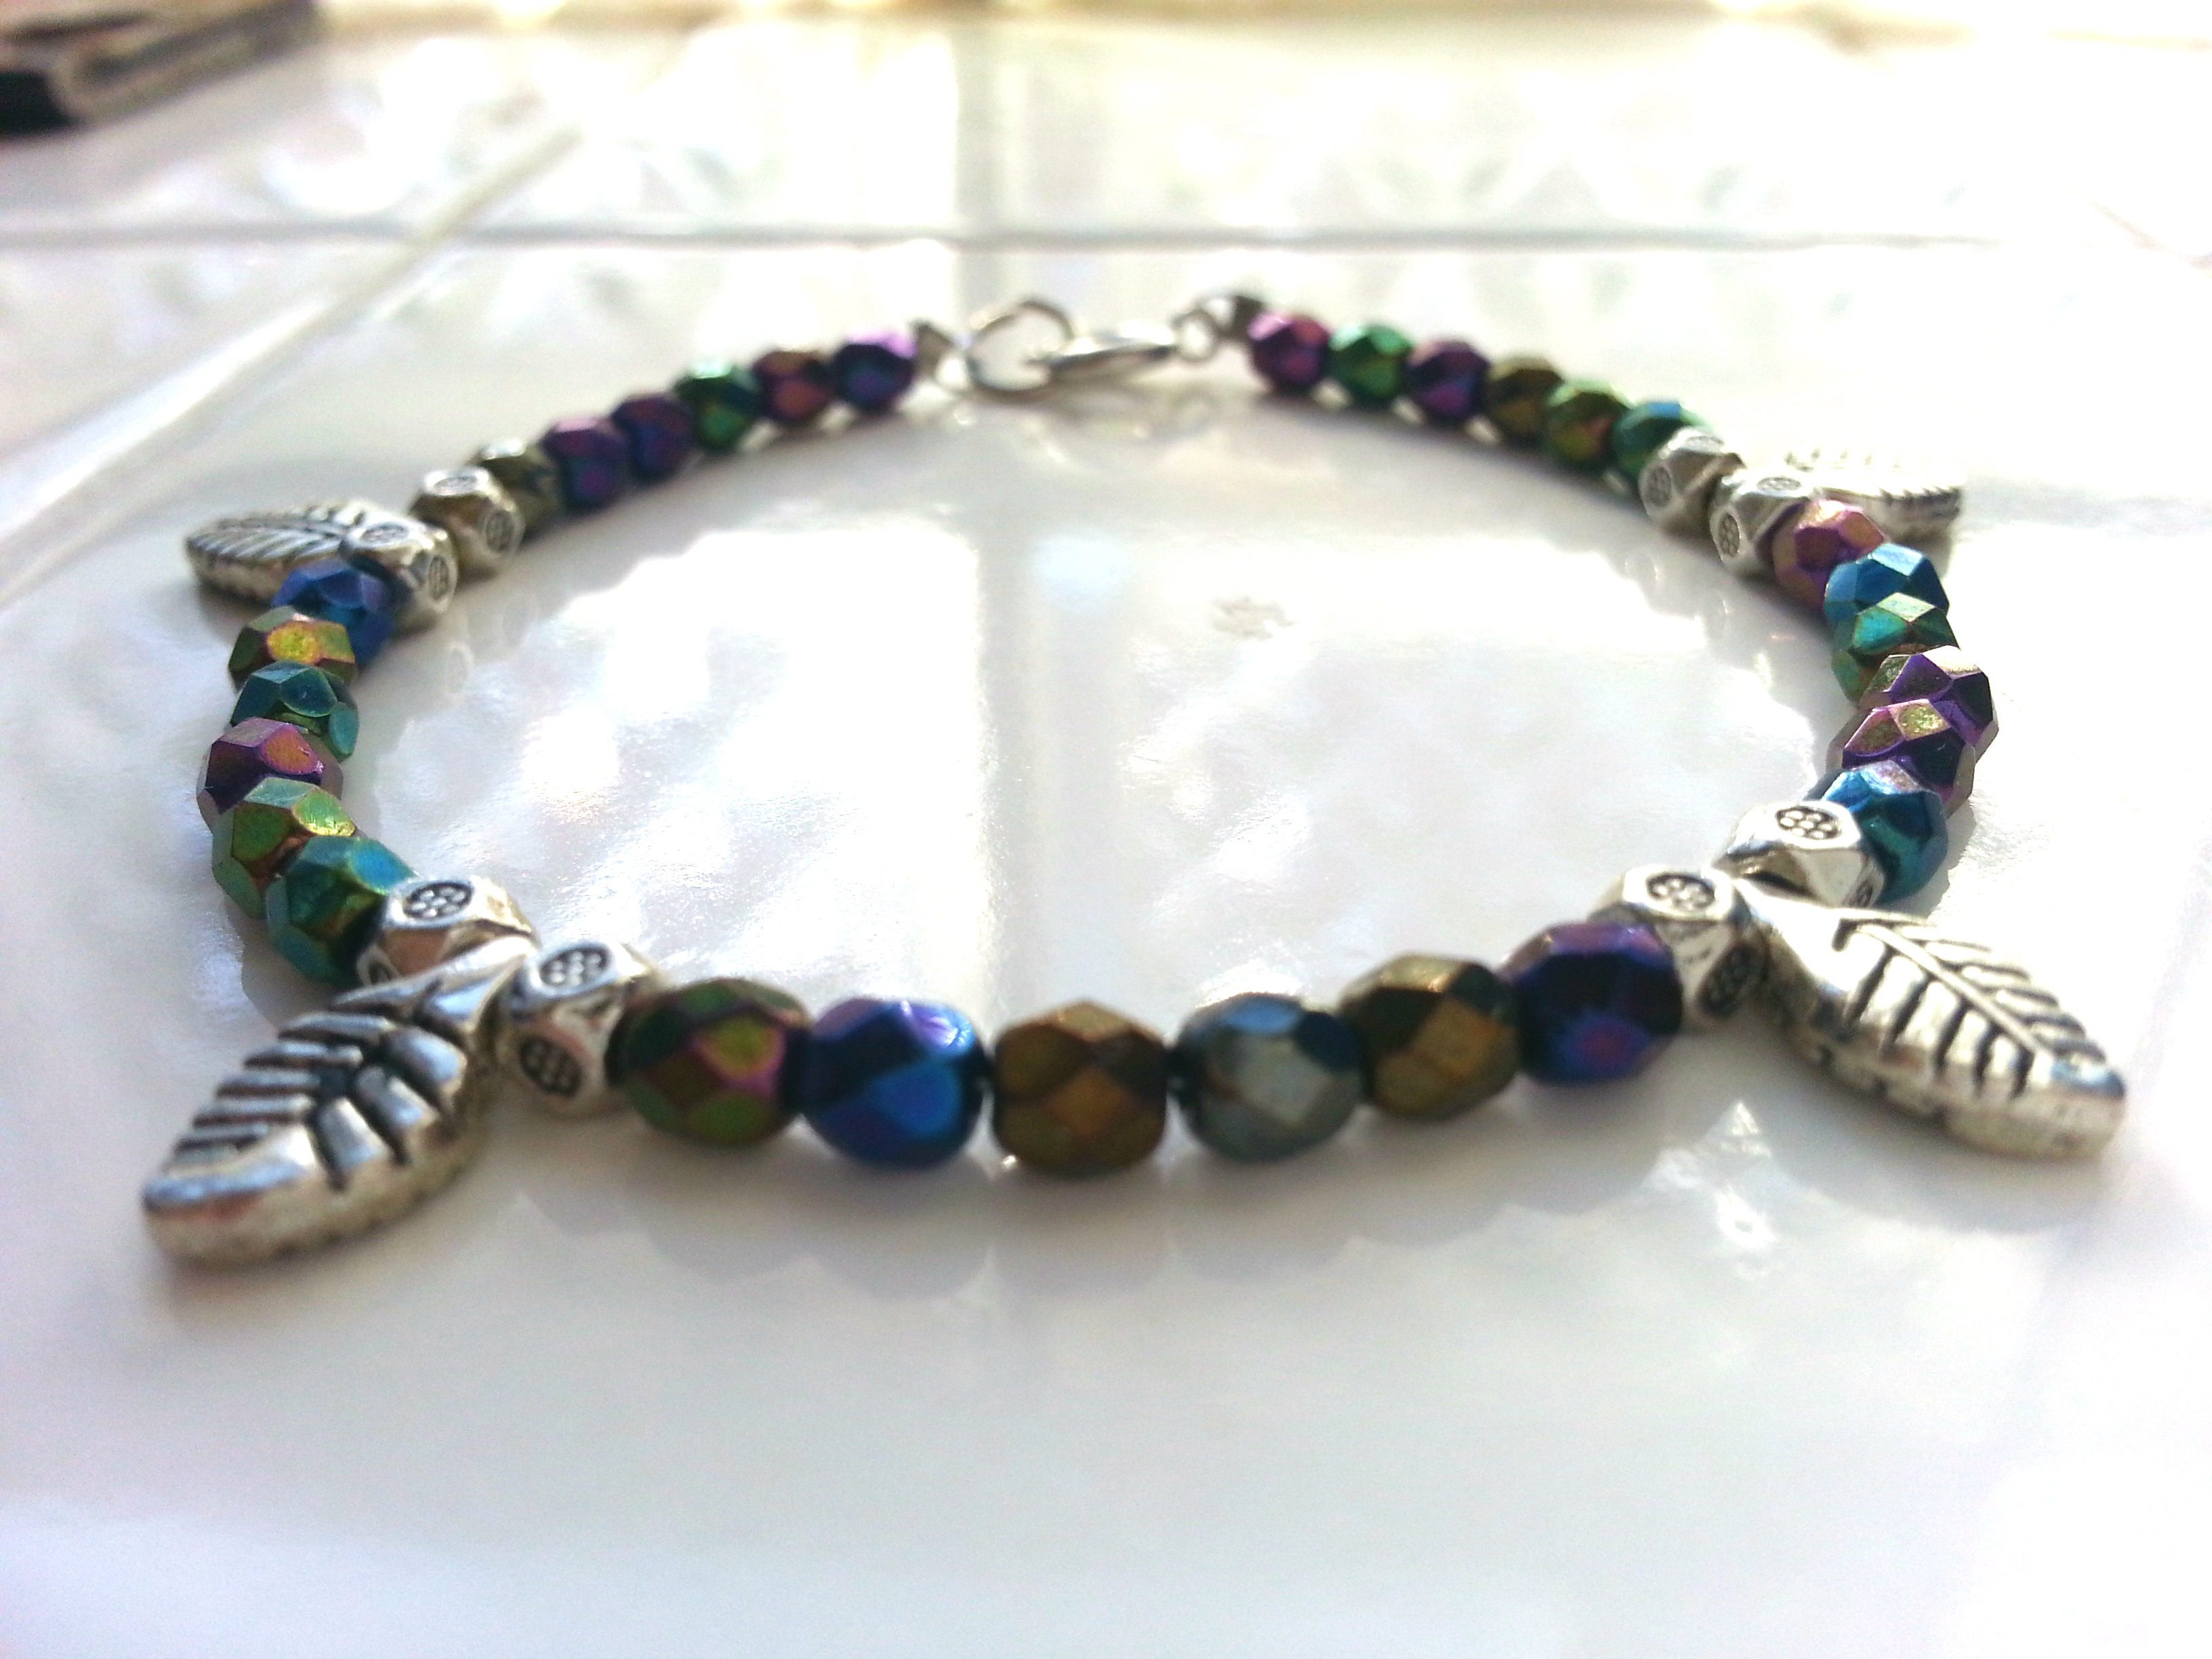 ronin picnic buy in available handmade bracelet wales jewellery homemade online to sizes p